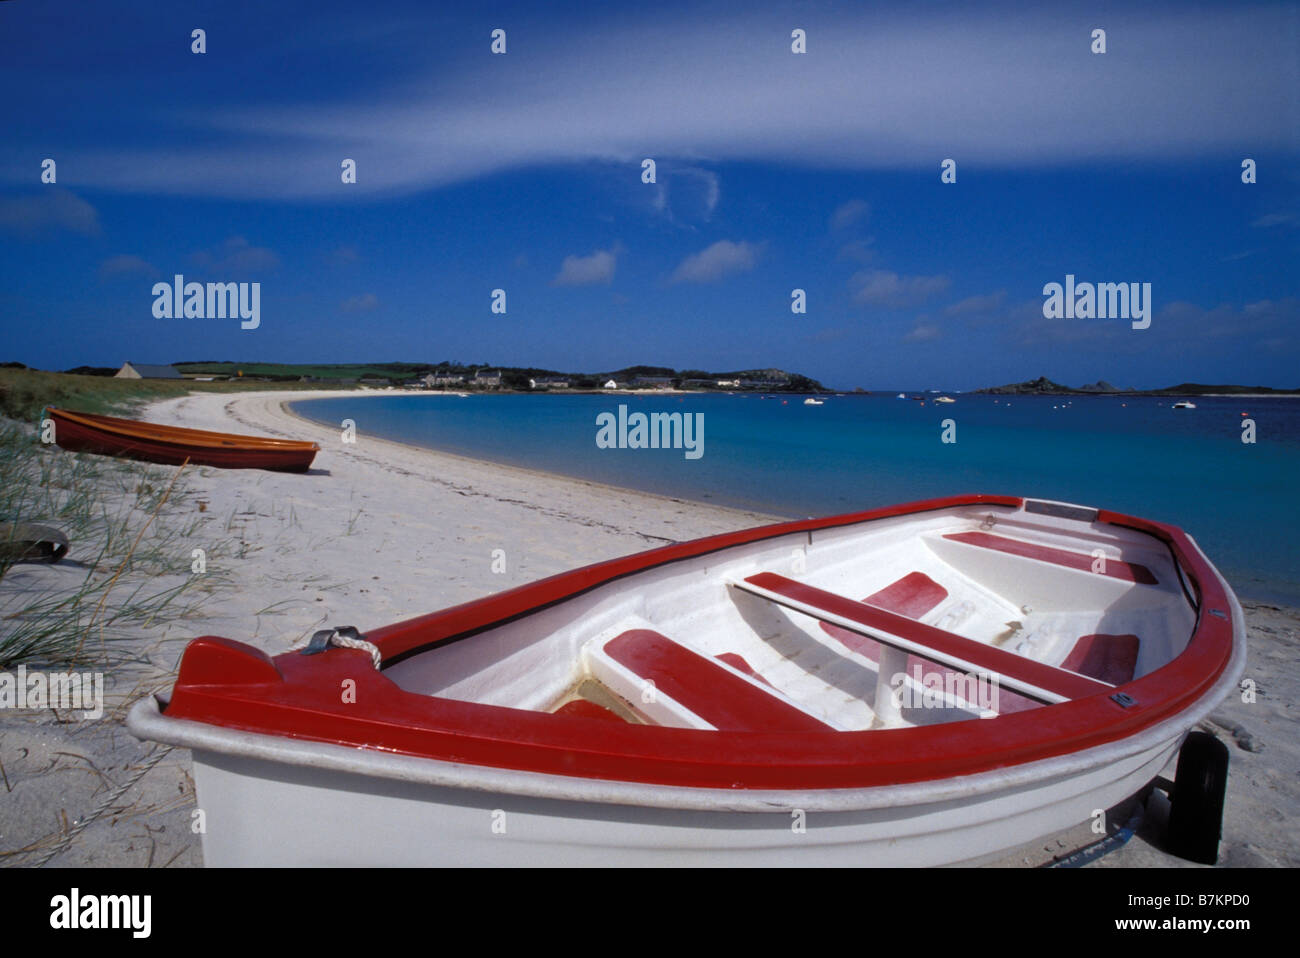 A pretty red and white rowing boat moored on the beach at Green Porth. Old Grimsby. Tresco, Isles of Scilly England - Stock Image